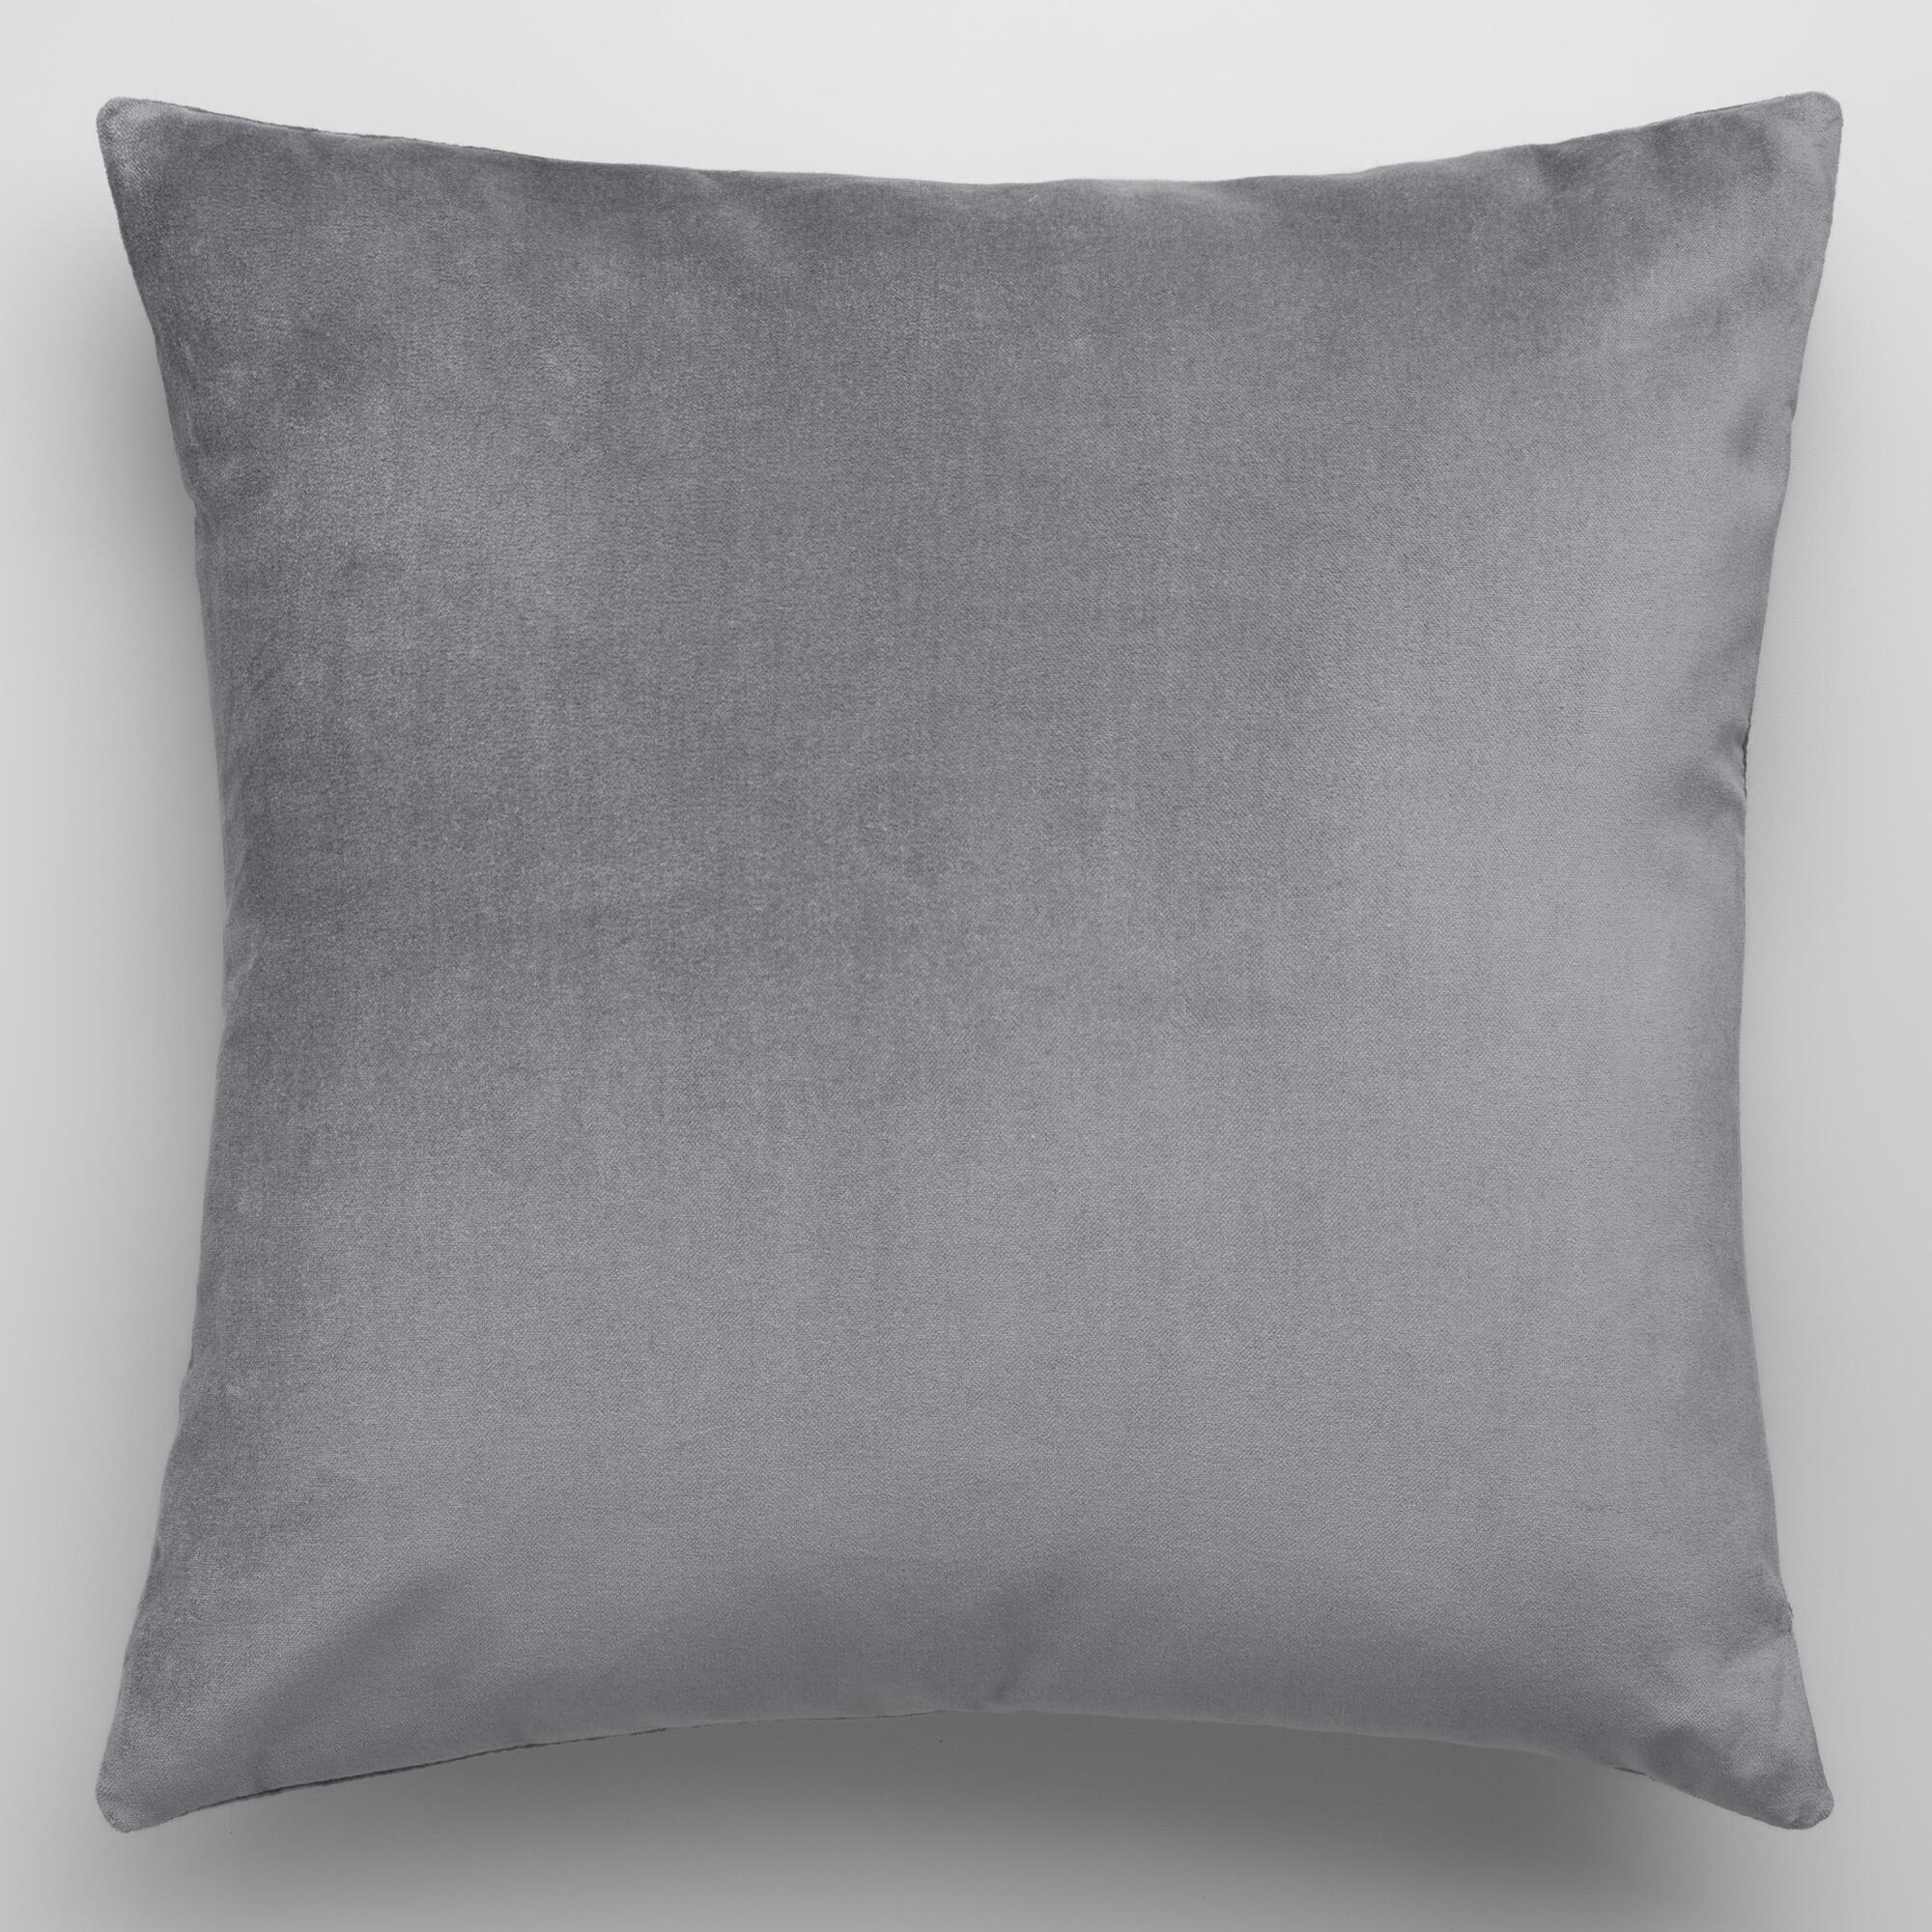 Throw Pillows Velvet : Tornado Gray Velvet Throw Pillow World Market